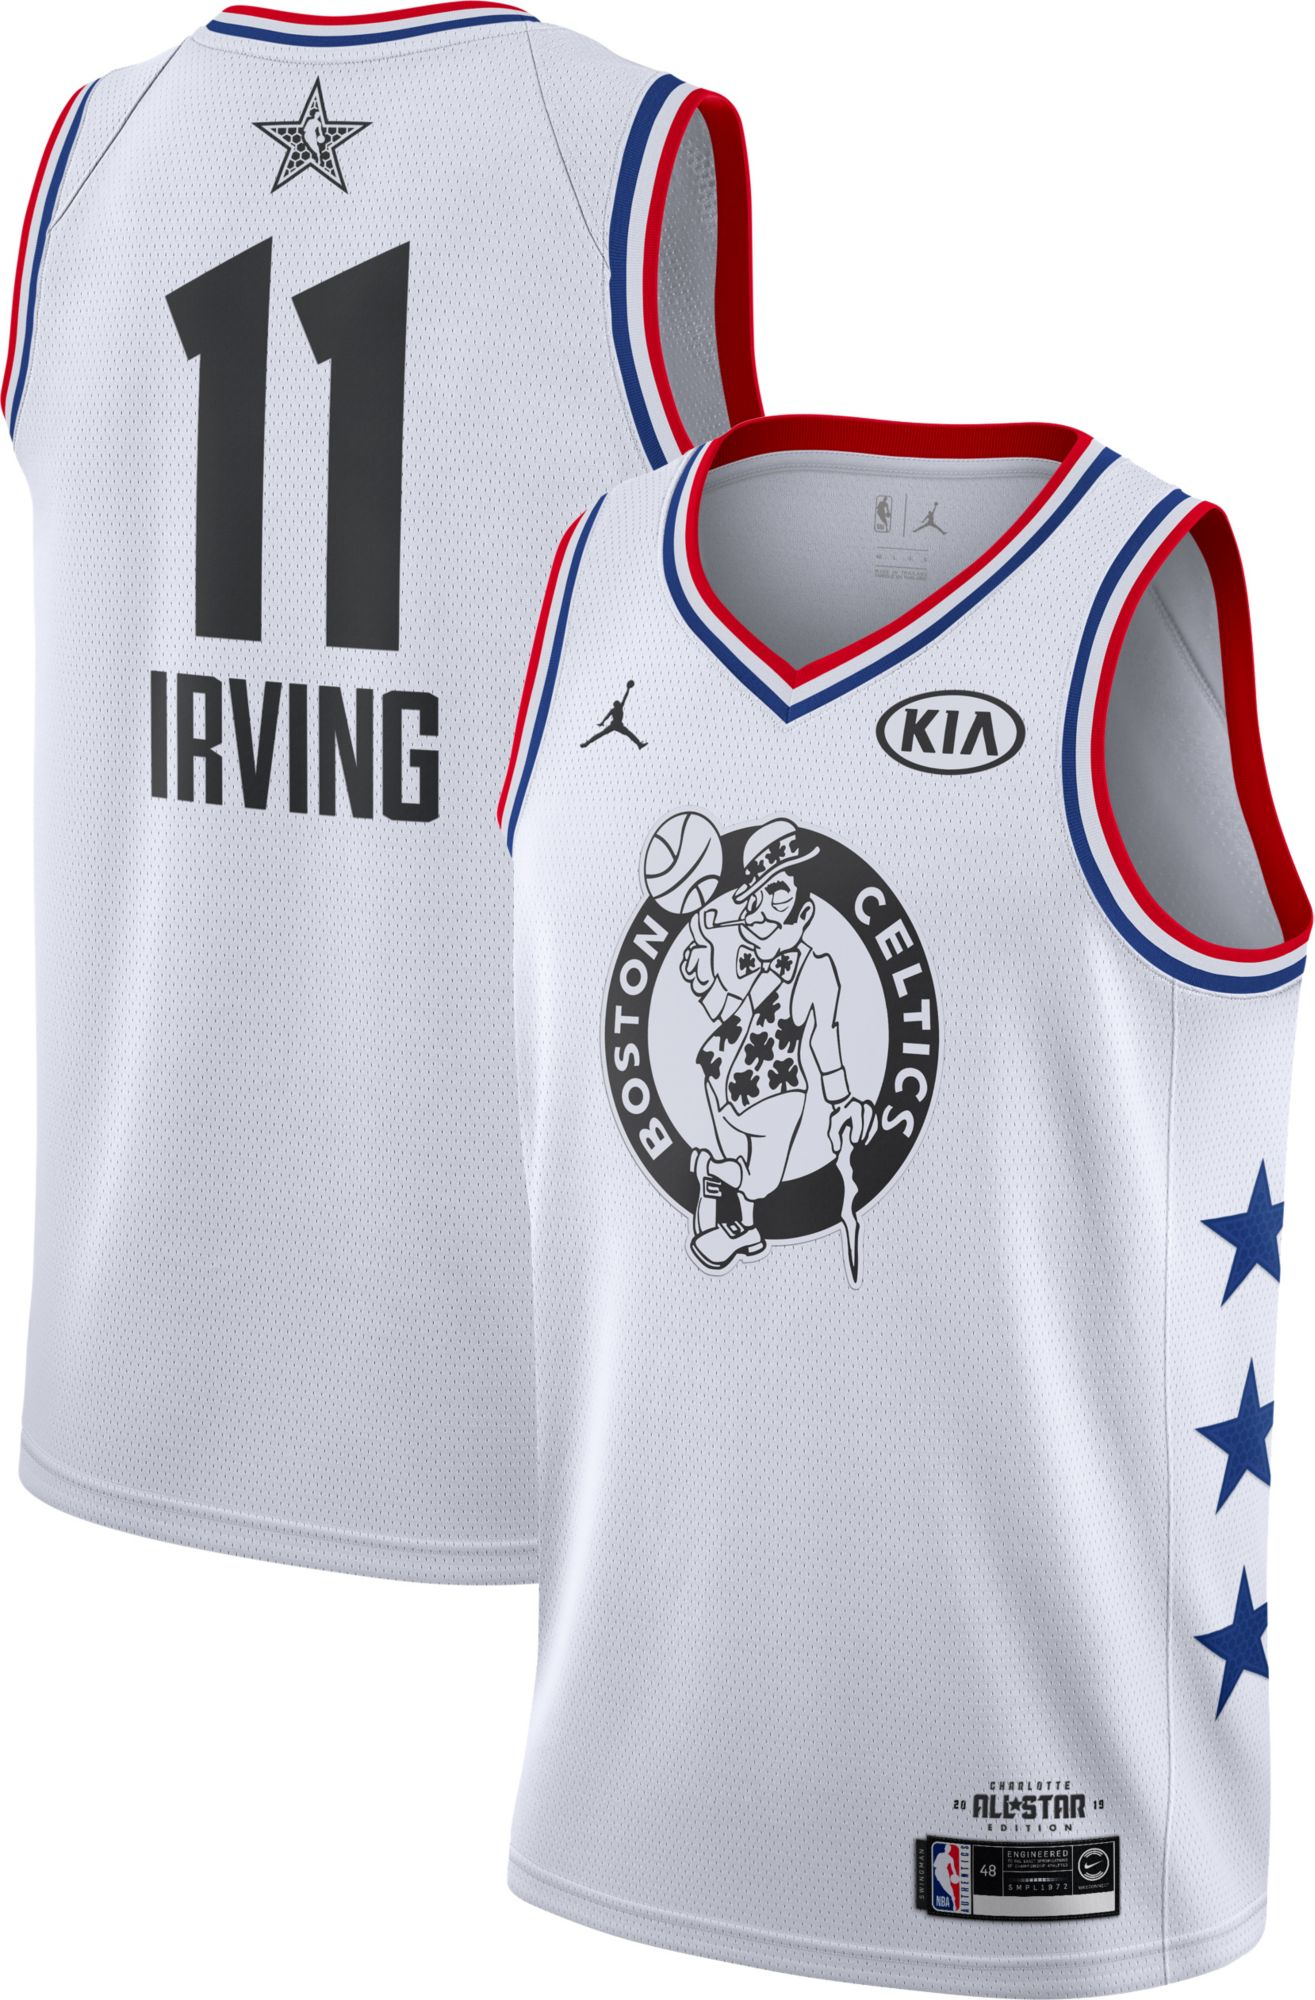 new arrival 2467b 48610 Jordan Men's 2019 NBA All-Star Game Kyrie Irving White Dri ...